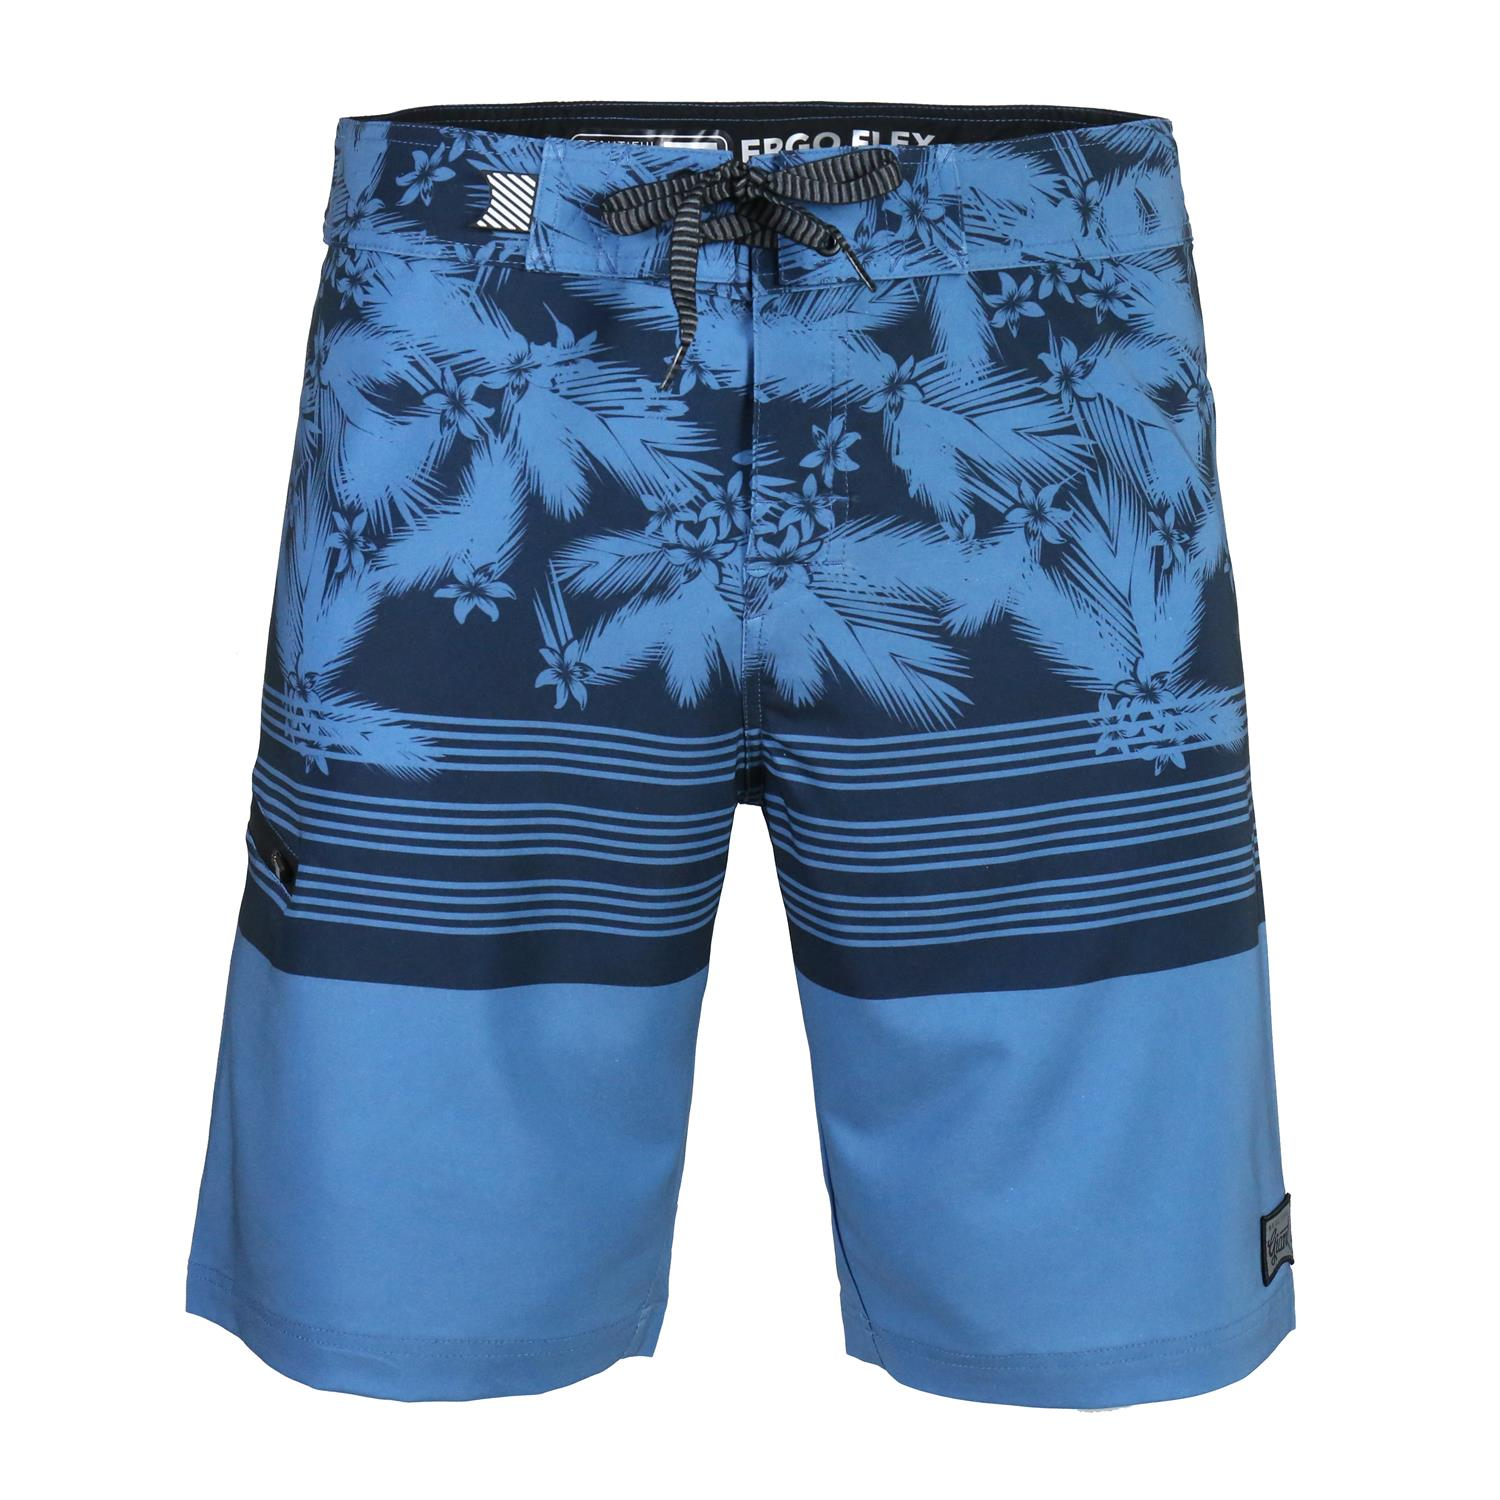 Men's-Beach-Vacation-Swimwear--Shorts-(KAISERS)